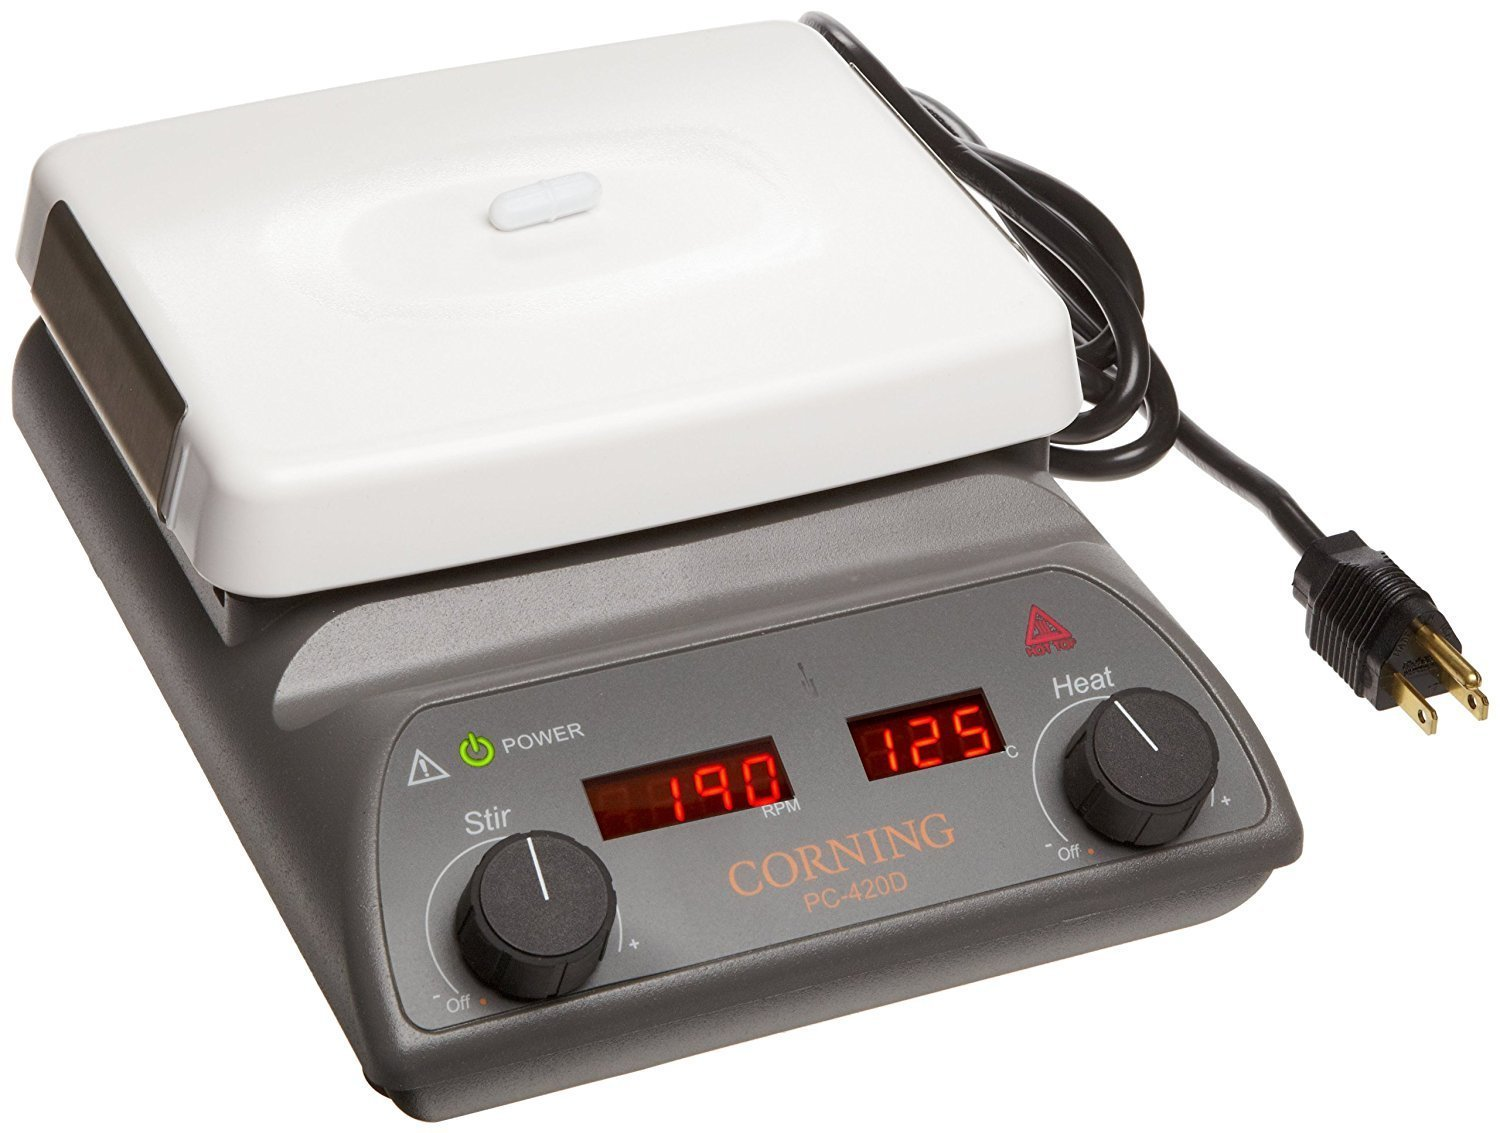 Corning 6795-420D PC-420D Stirring Hot Plate with Digital Display and 5'' x 7'' Pyroceram Top, 5 to 550 Degree C, 120V/60Hz